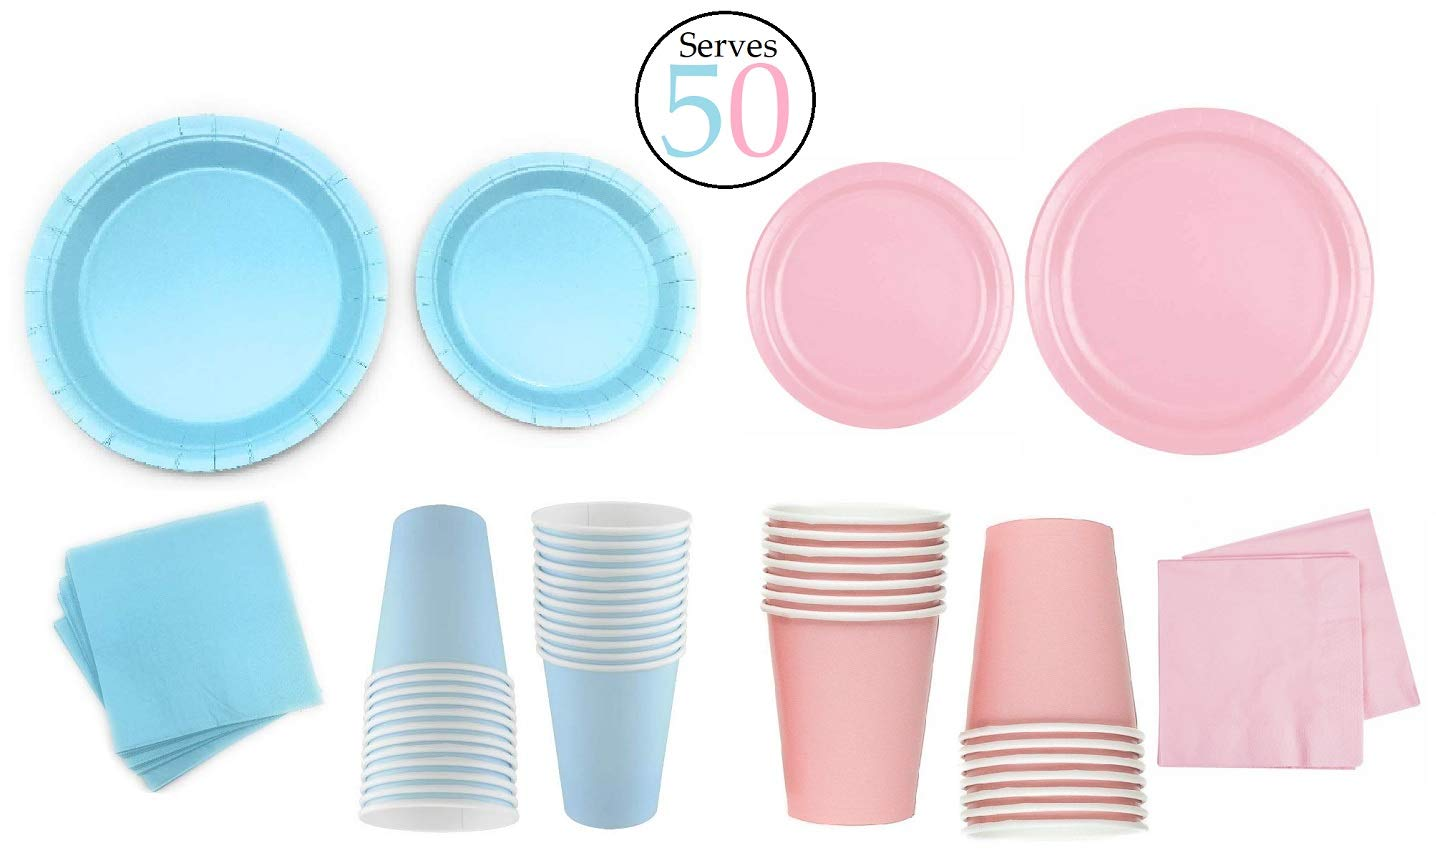 Serves 50 | Complete Party Pack | Light Blue and Light Pink | 9'' Dinner Paper Plates | 7'' Dessert Paper Plates | 9 oz Cups | 3 Ply Napkins | office parties, birthday parties, festivals, Gender Reveal Party Theme by Oojami